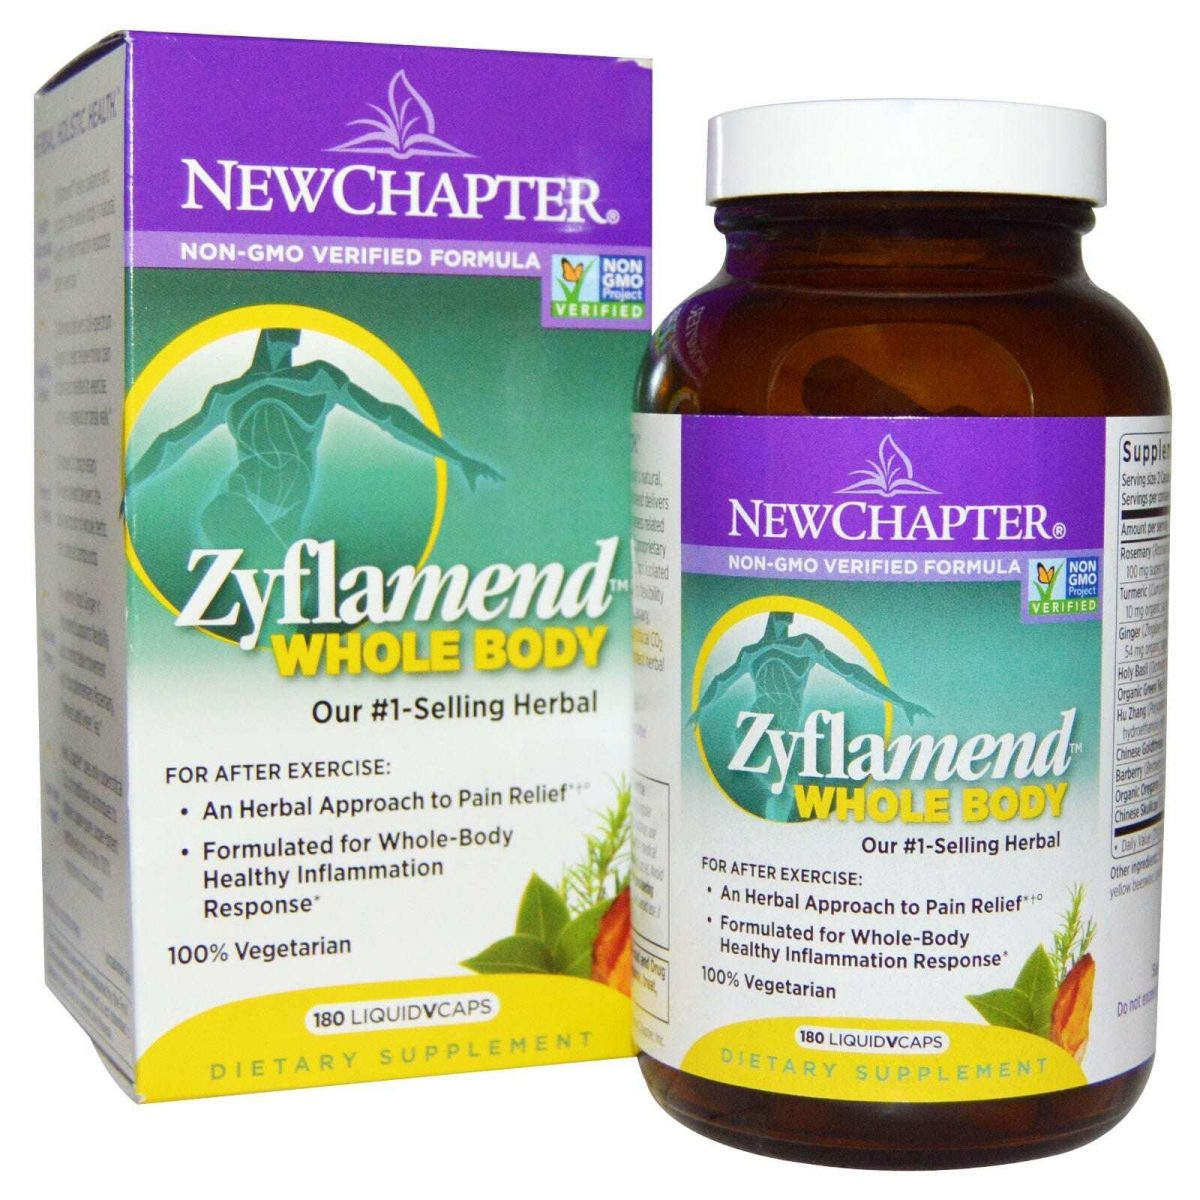 Zyflamend Whole Body Joint Supplement - 180 Liquid VCaps - New Chapter-0